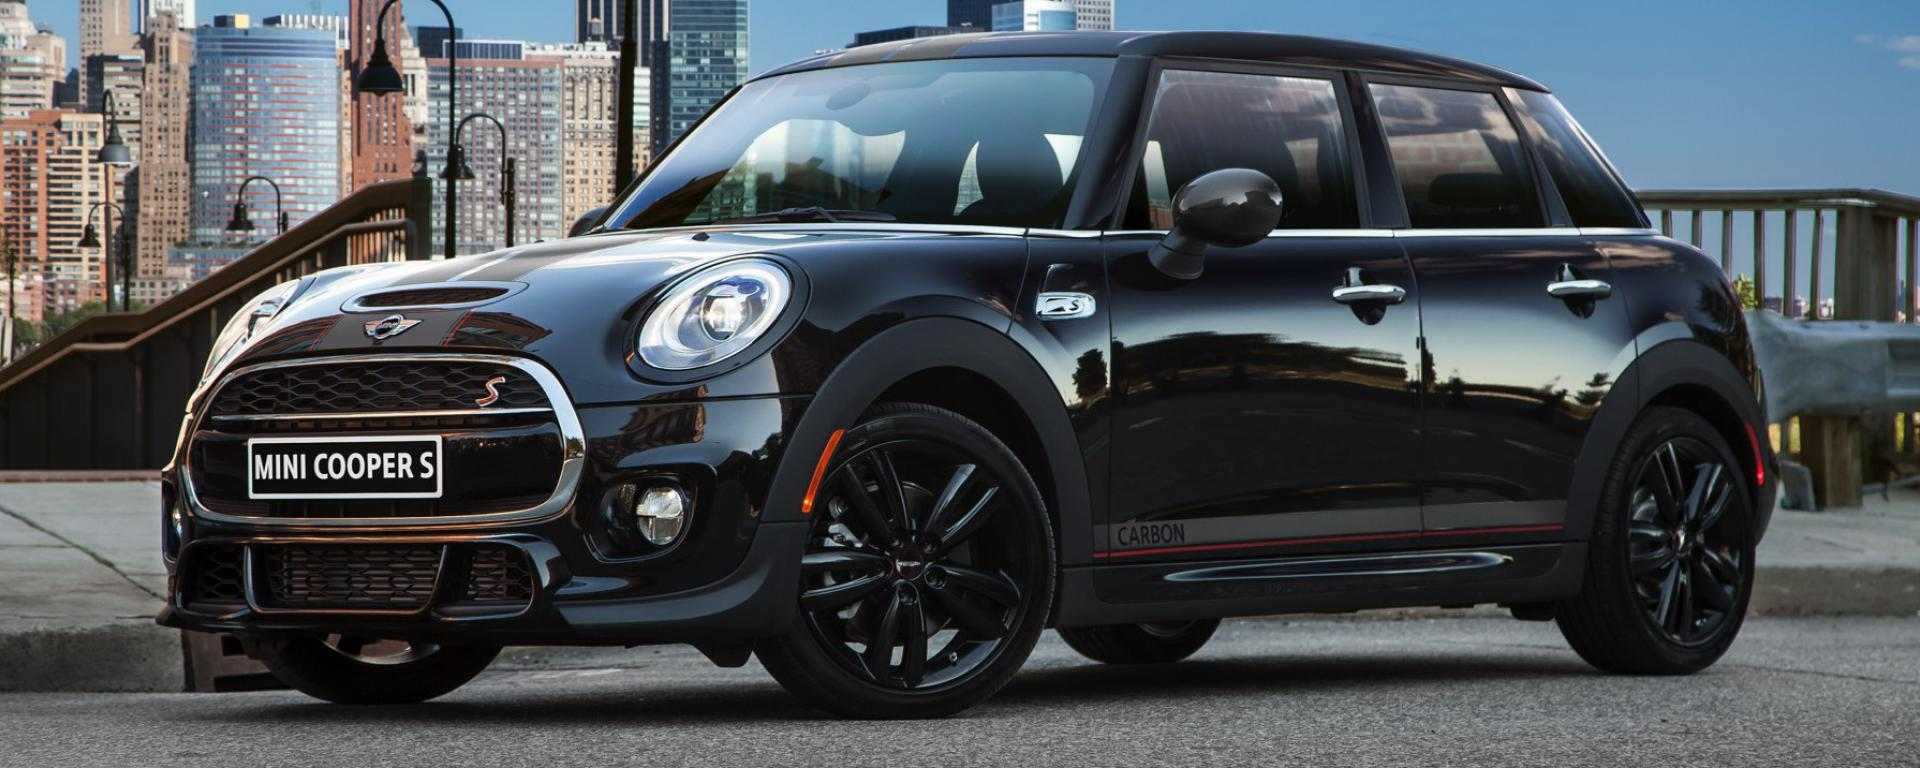 mini cooper carbon edition a john cooper works 4 door. Black Bedroom Furniture Sets. Home Design Ideas